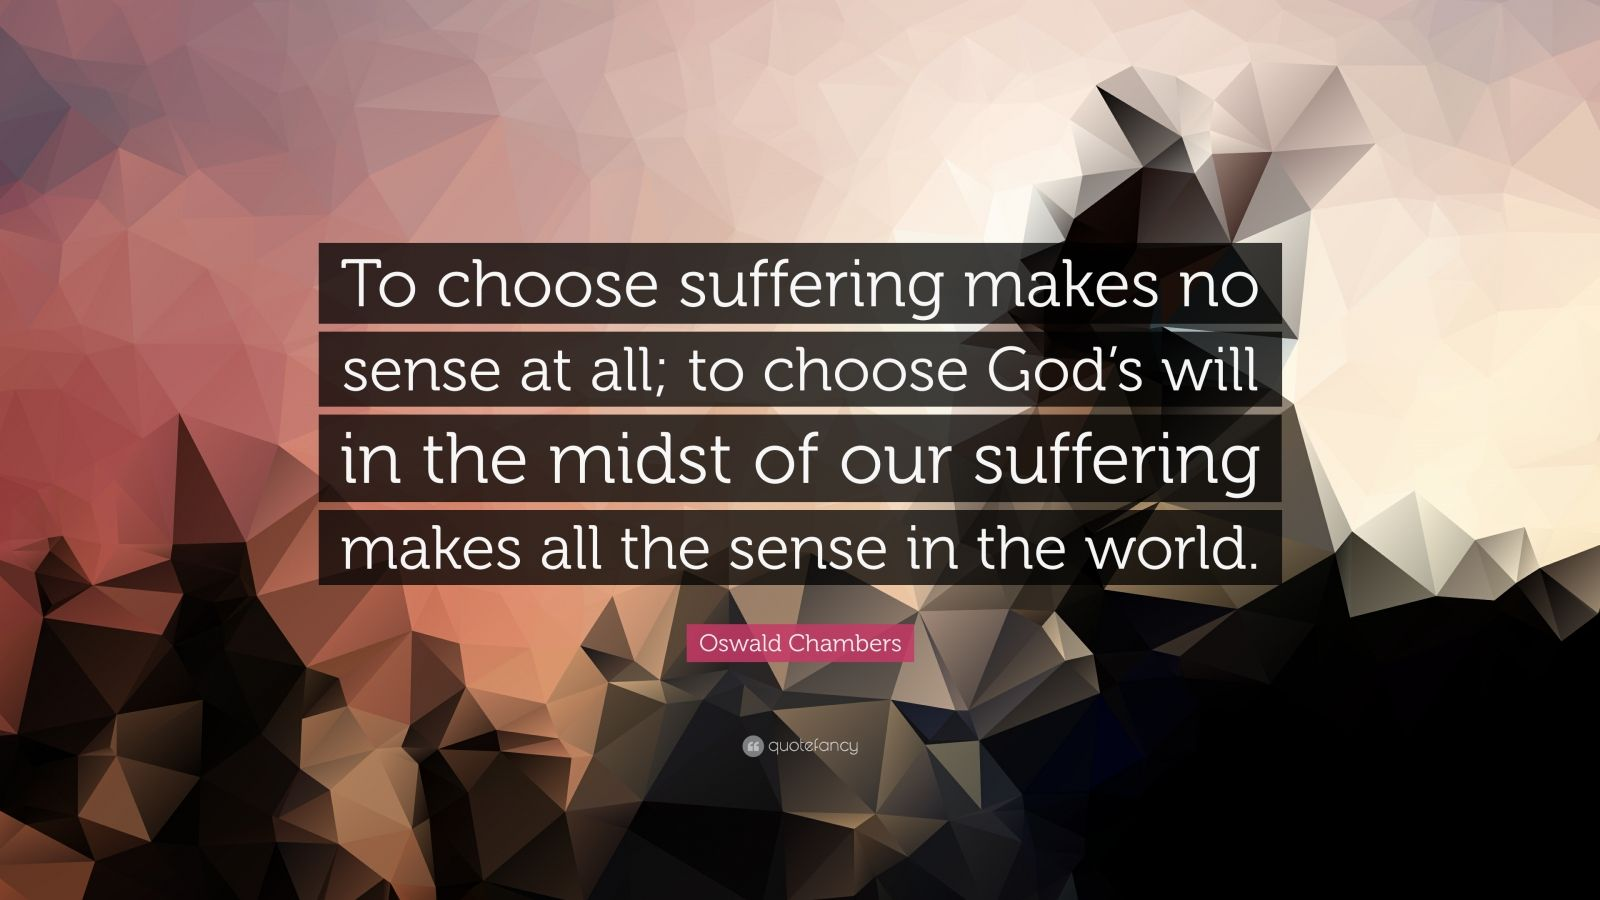 """Oswald Chambers Quote: """"To choose suffering makes no sense at all; to choose God's will in the midst of our suffering makes all the sense in the world."""""""